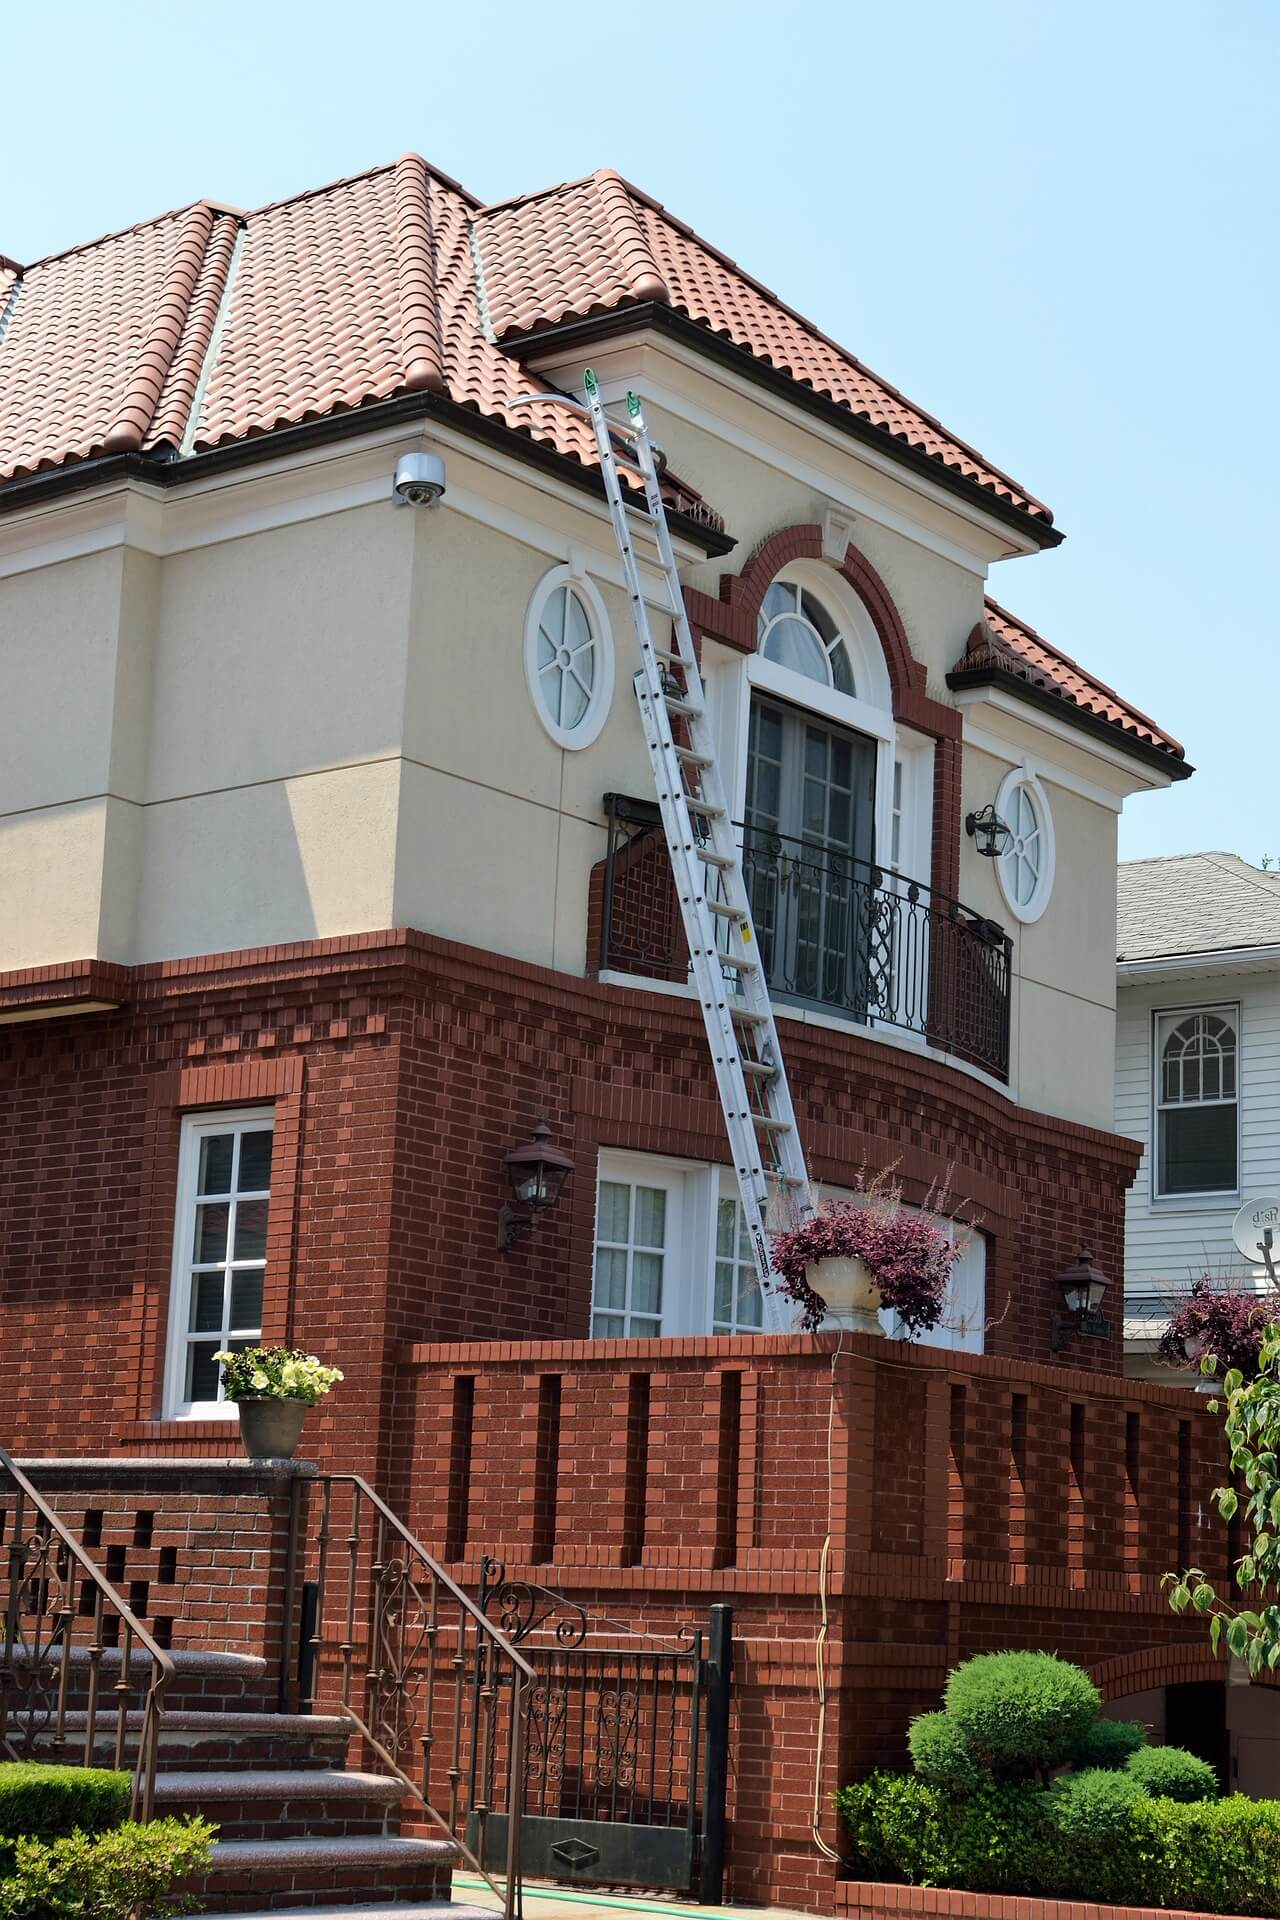 A home with a ladder propped up against it, undergoing an insurance claim inspection